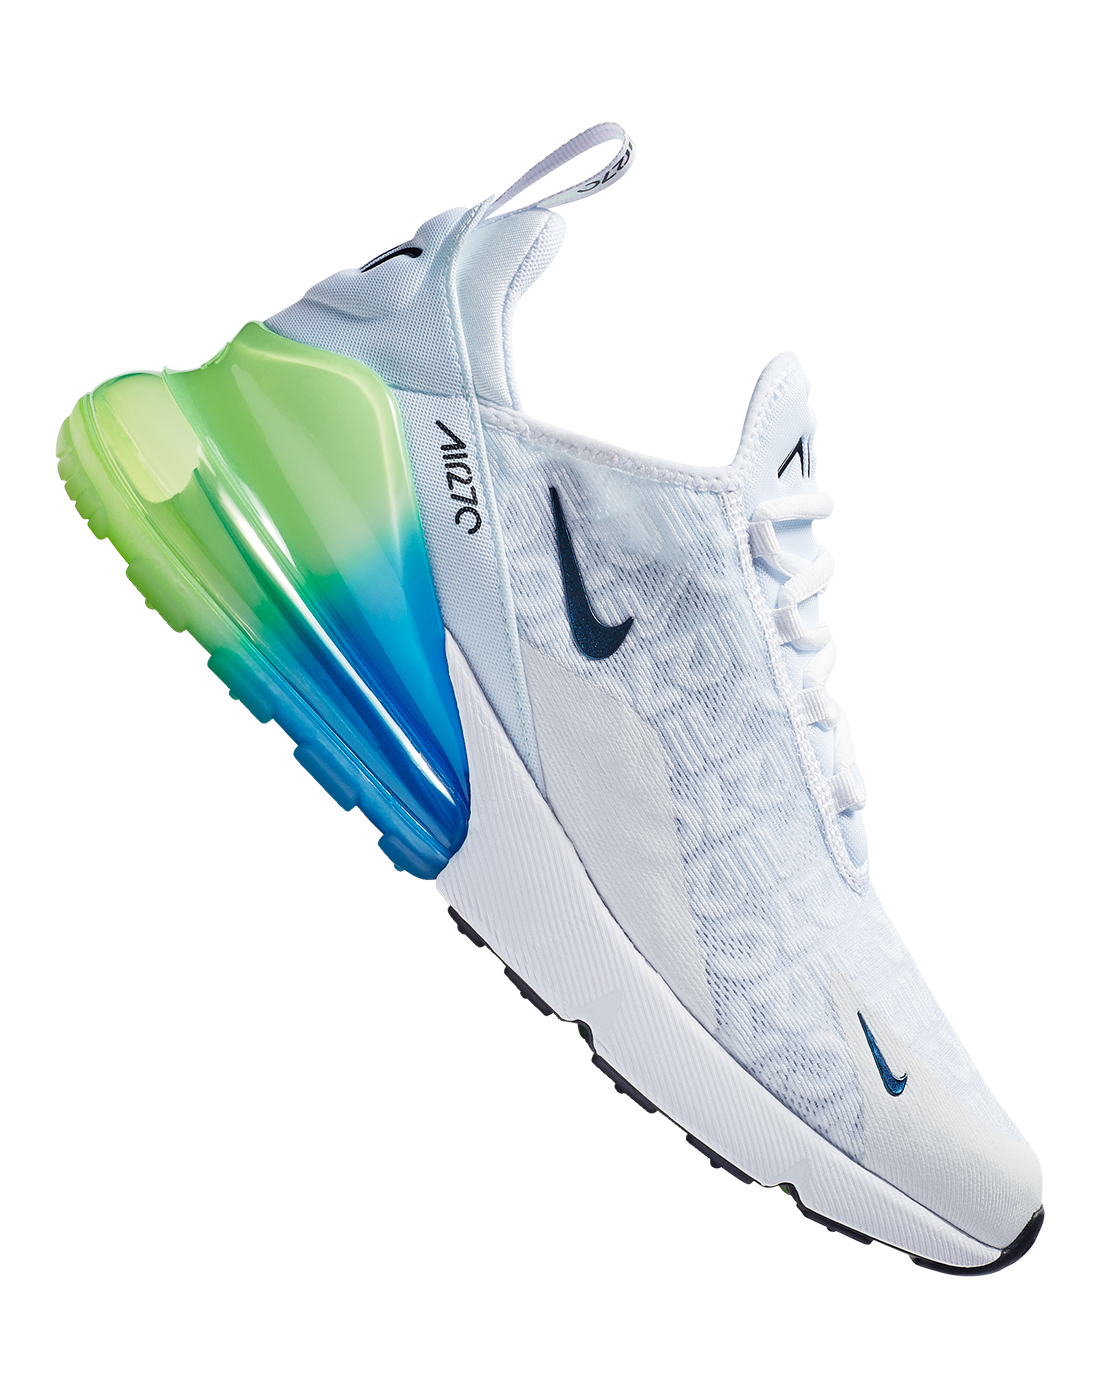 8774aaef89 Men's White, Blue & Green Nike Air Max 270 | Life style Sports